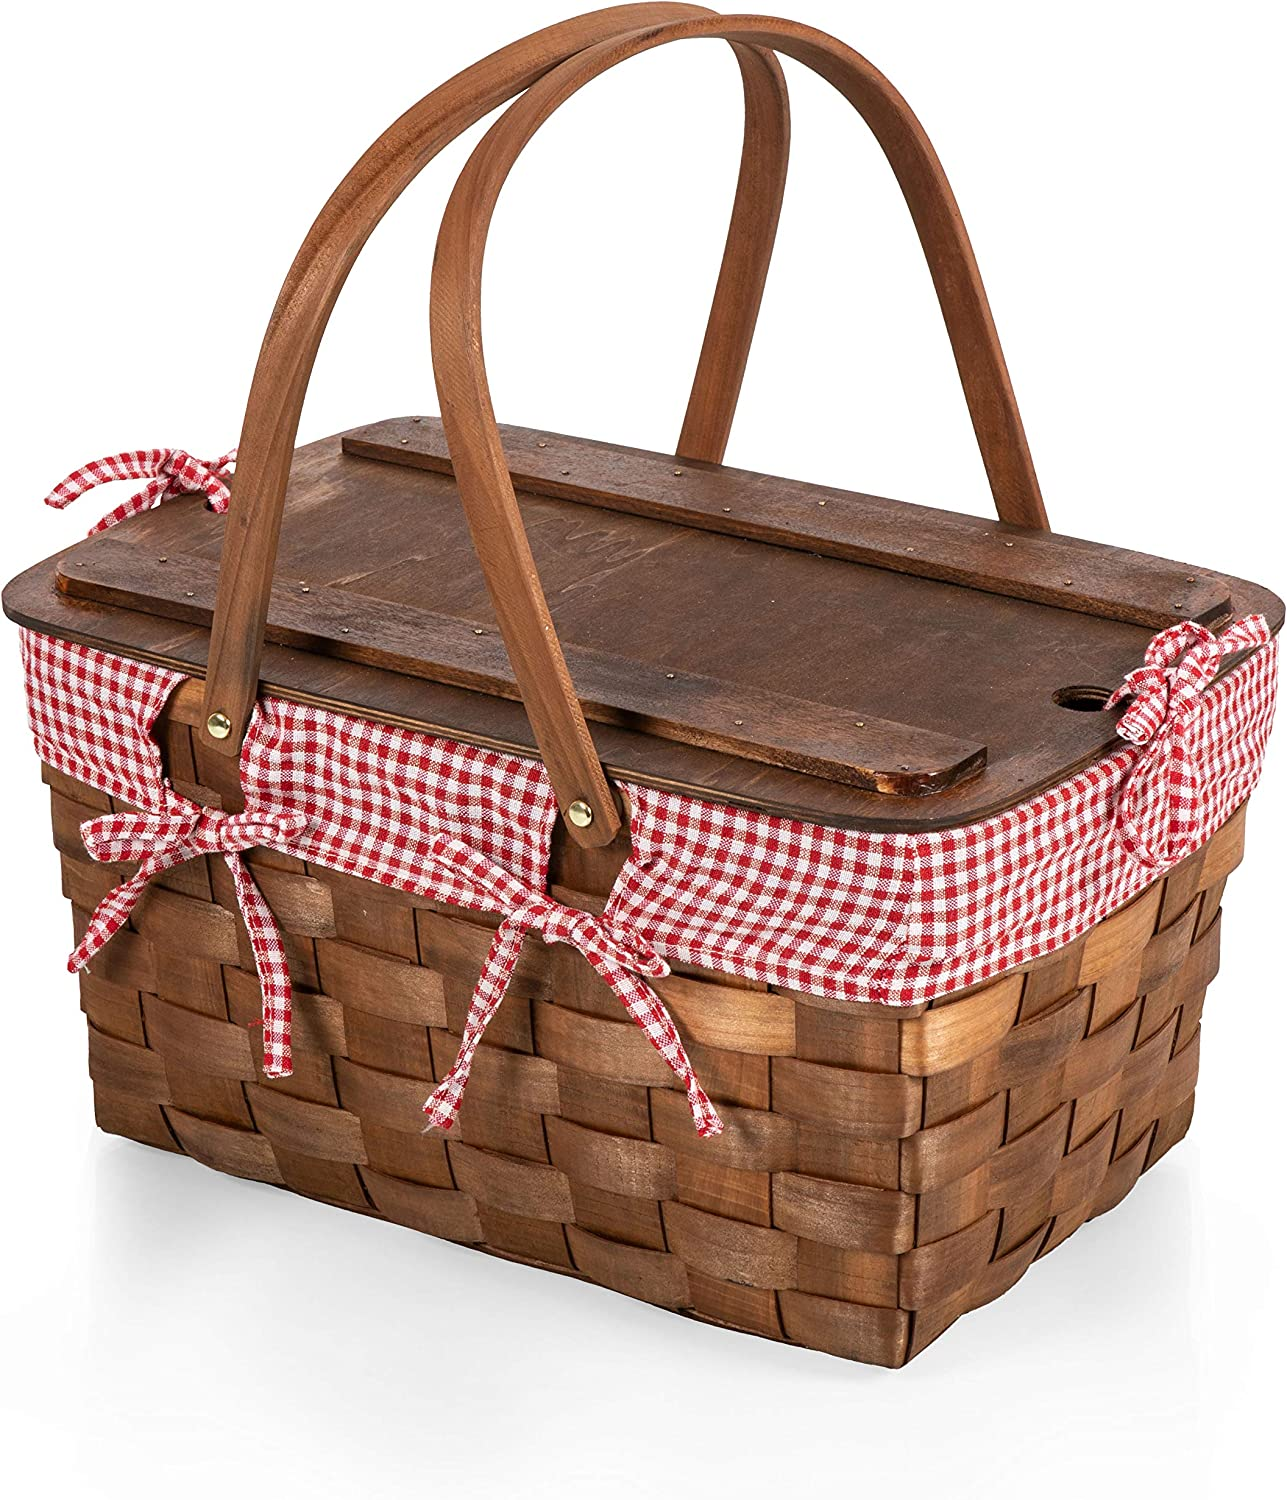 Picnic Time - A Picnic Time Brand 350-01-300-000-0 Kansas Handwoven Wood Picnic Baskets, Red & White Gingham Pattern